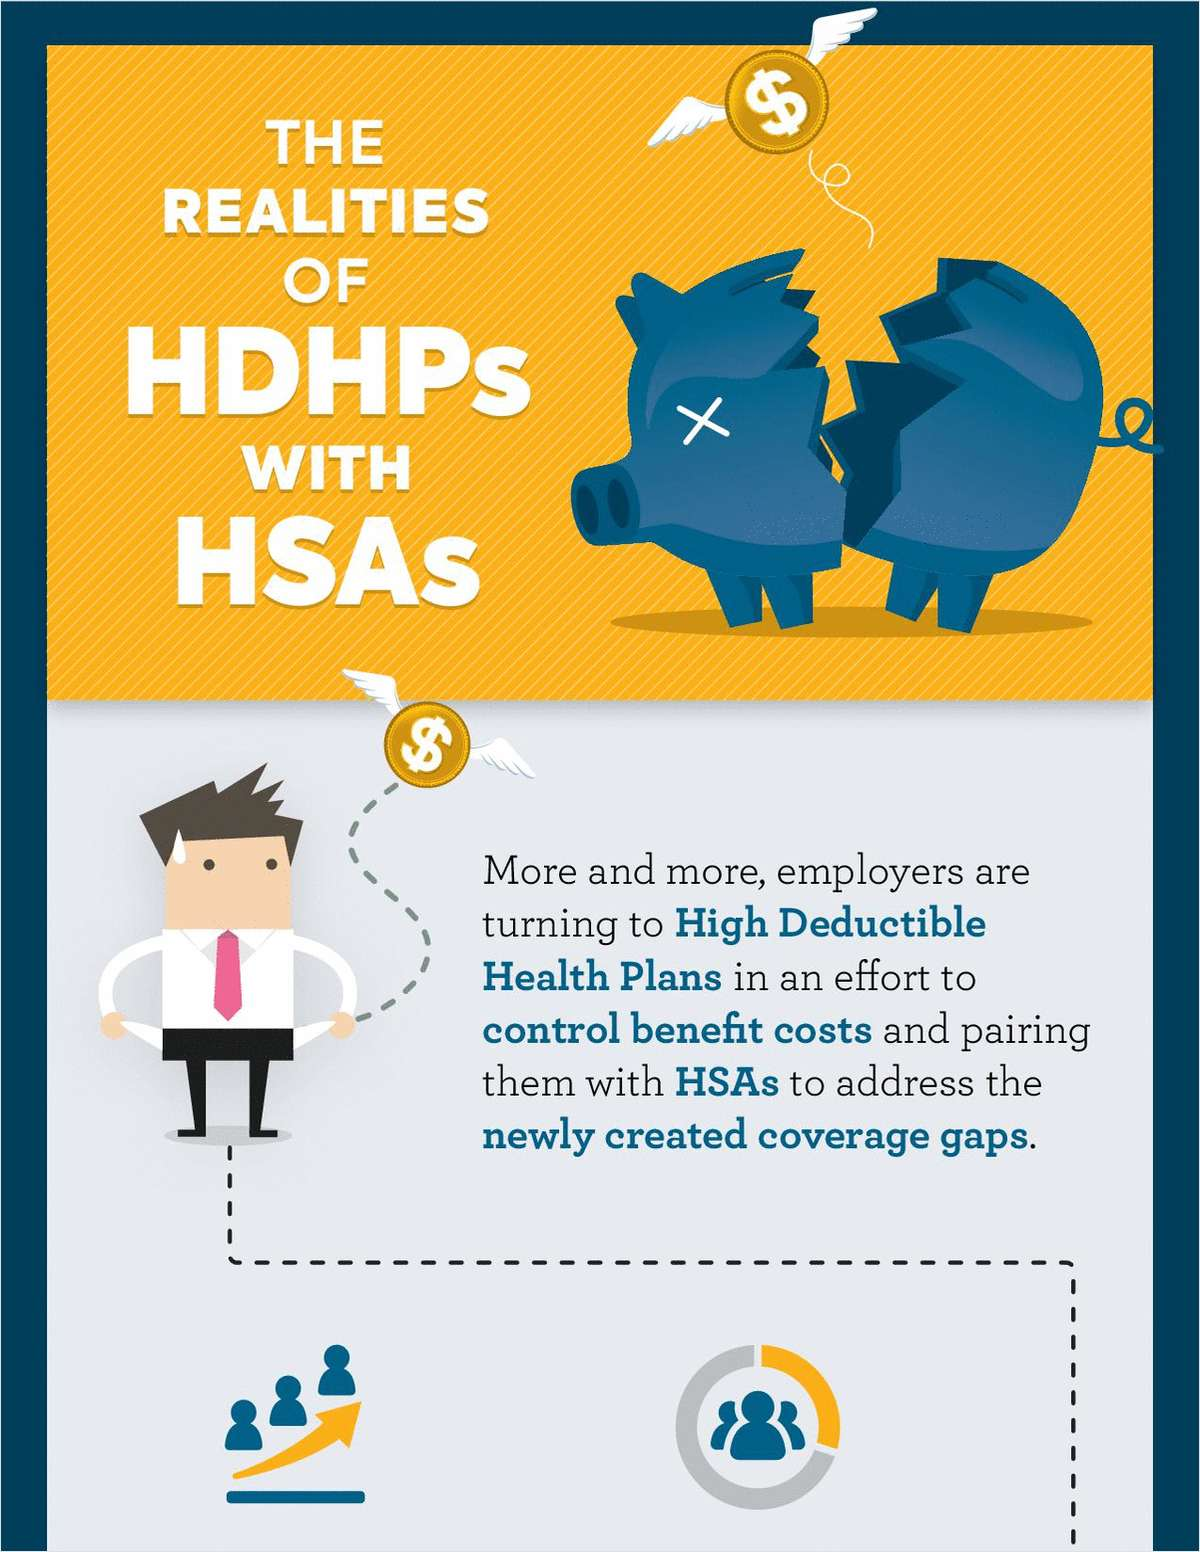 The Harsh Realities of HDHPs with HSAs